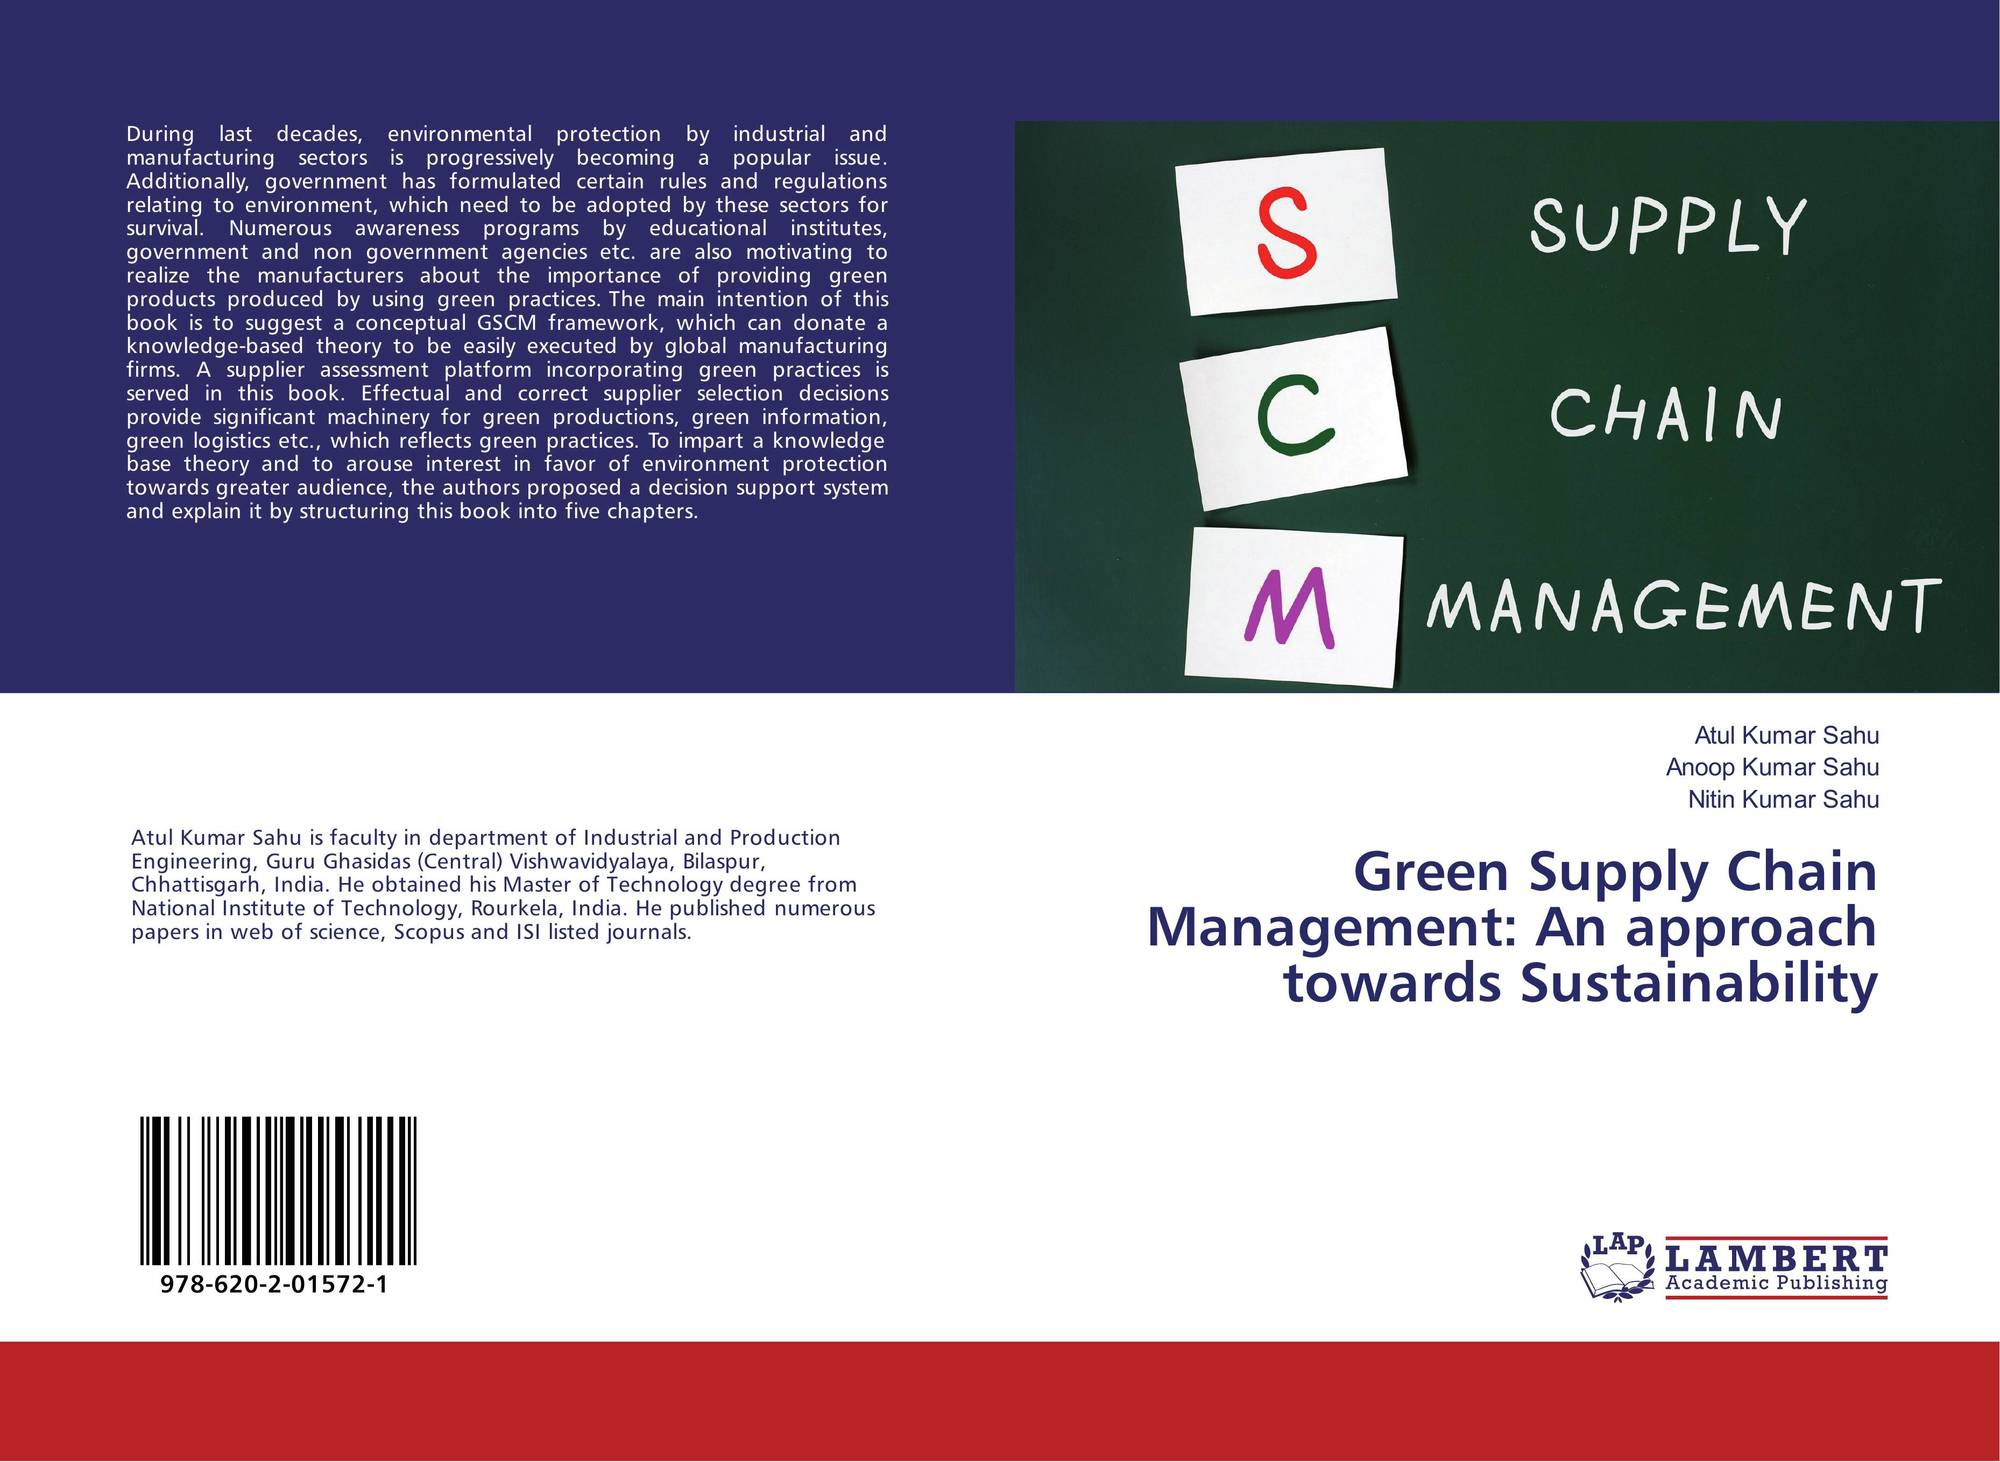 green supply chain malaysian practice 1 green supply chain management practices and performance purpose – this study examines the deployment of pro-active and re-active practices in the implementation of green supply chain management (gscm) and analyzes their impact on.